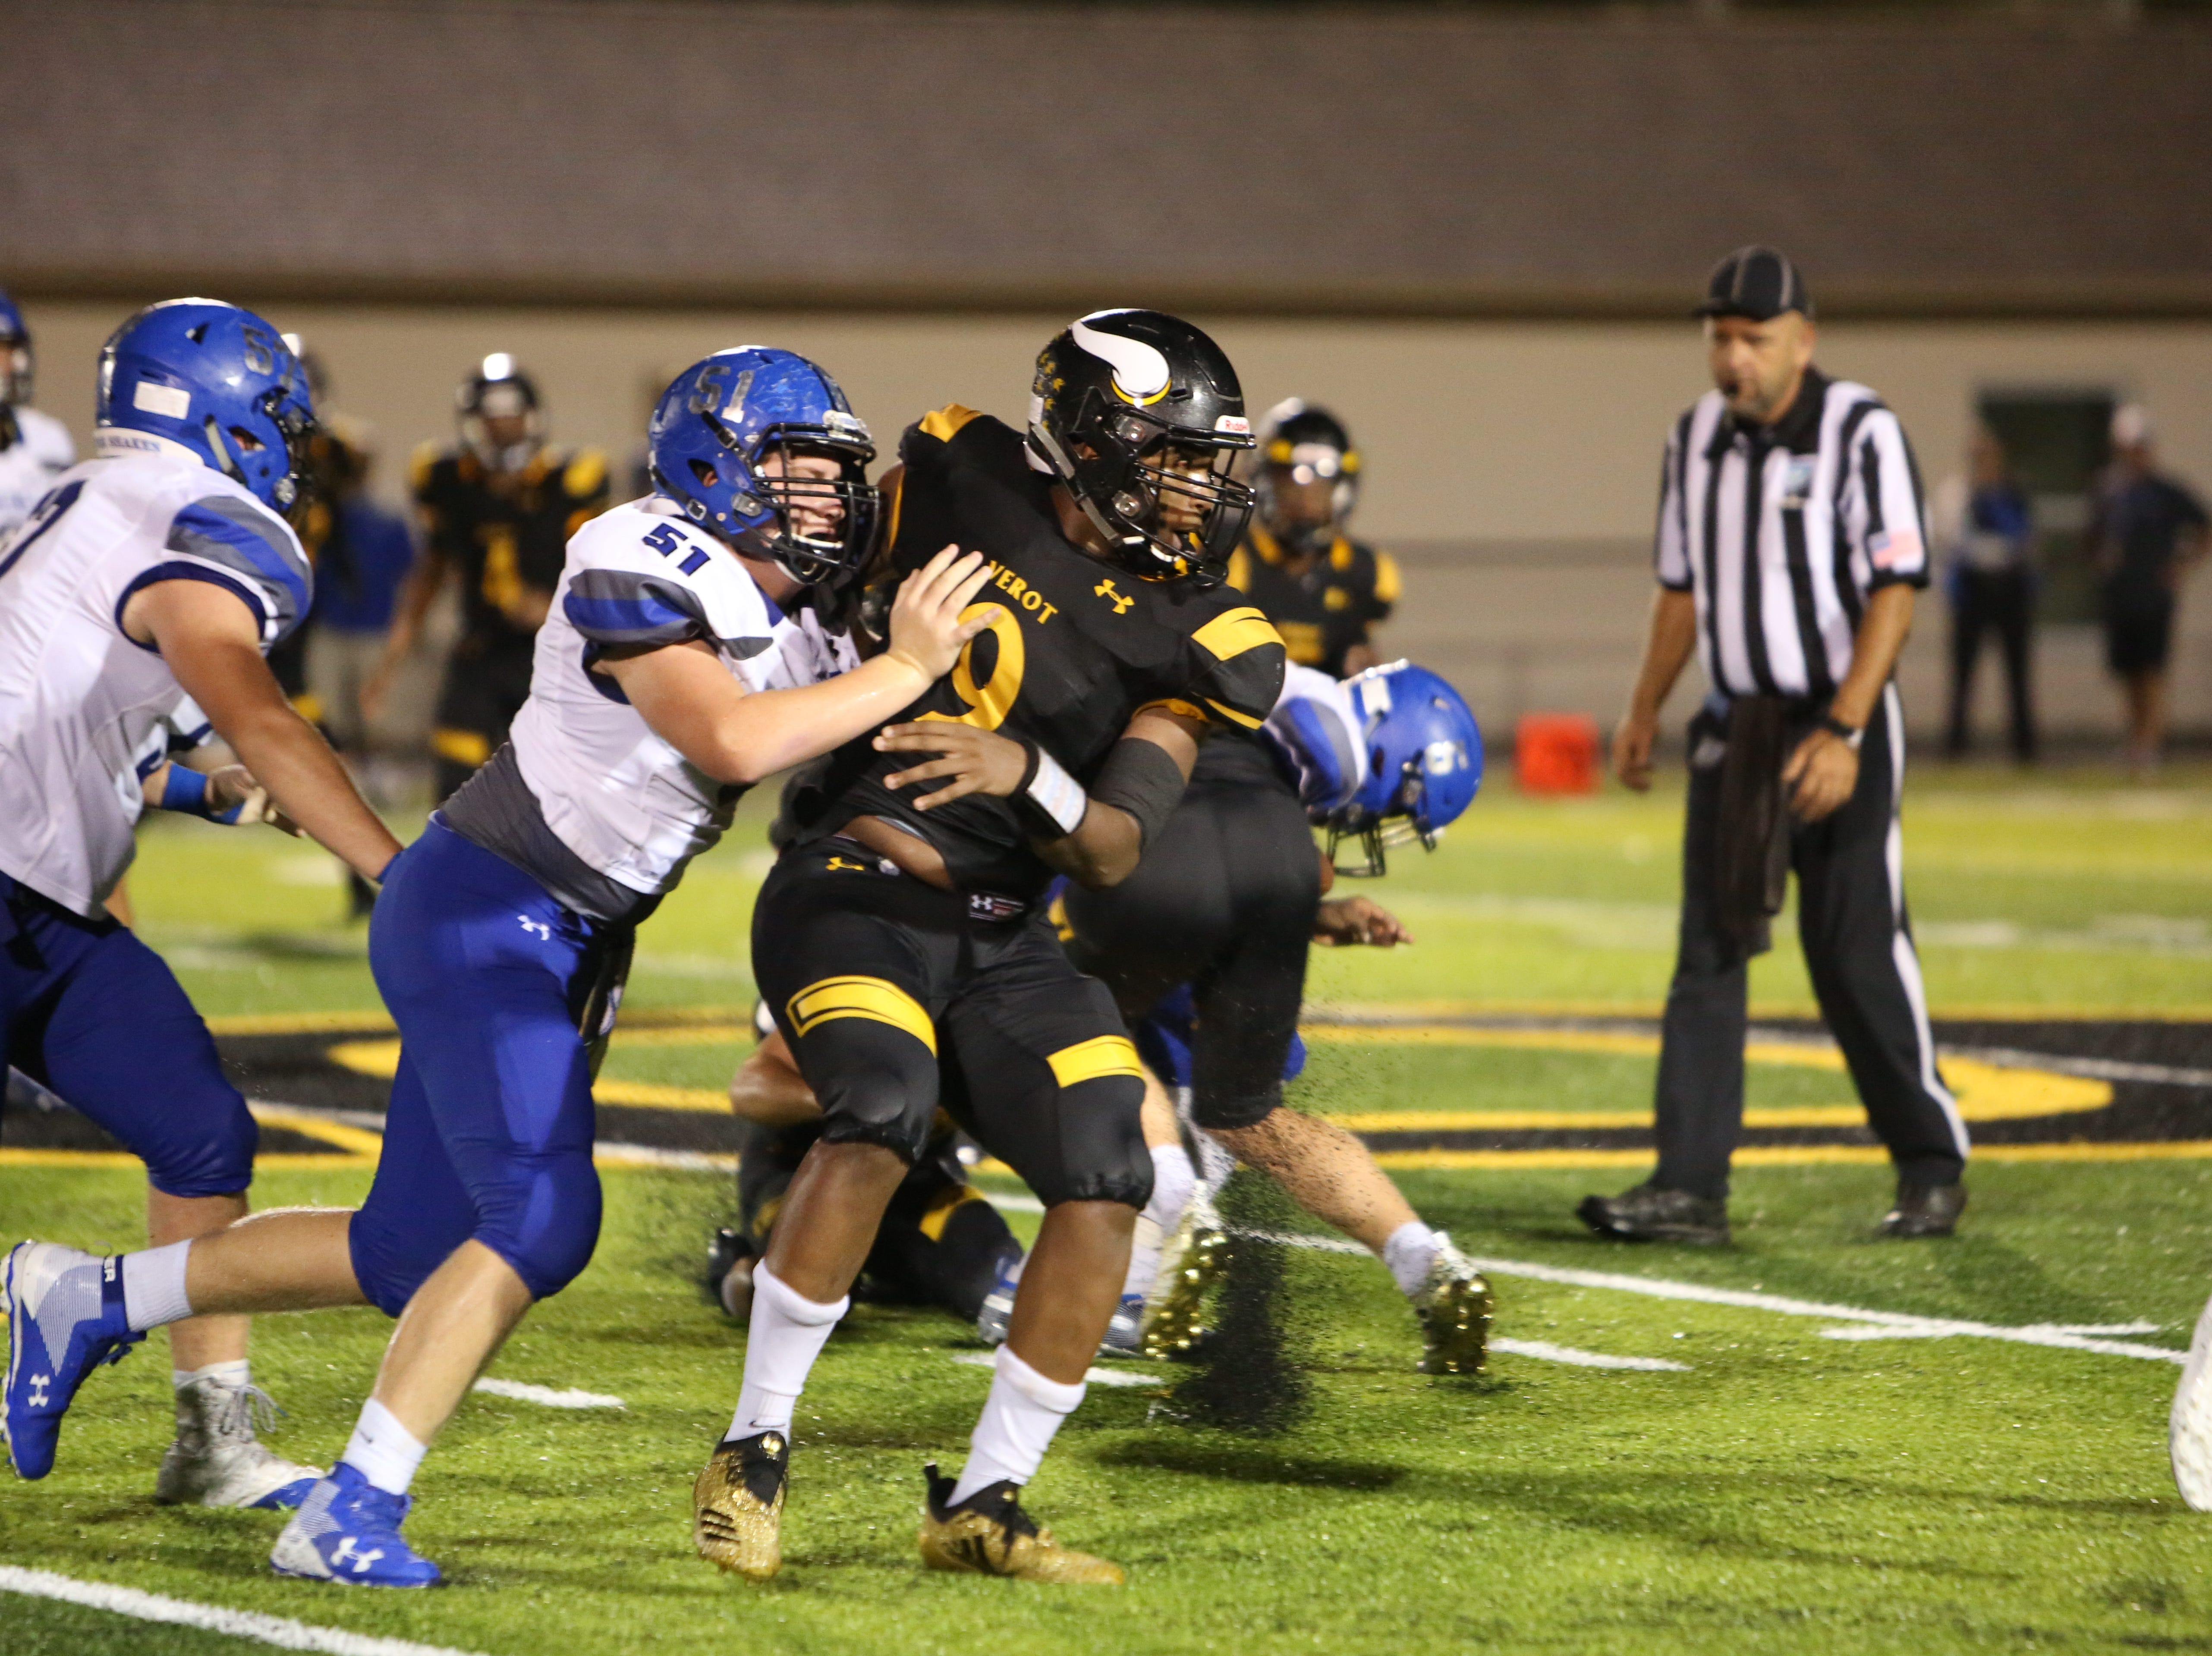 Bishop Verot hosted Lakeland Christian in its home opener and came away with a 17-10 victory.